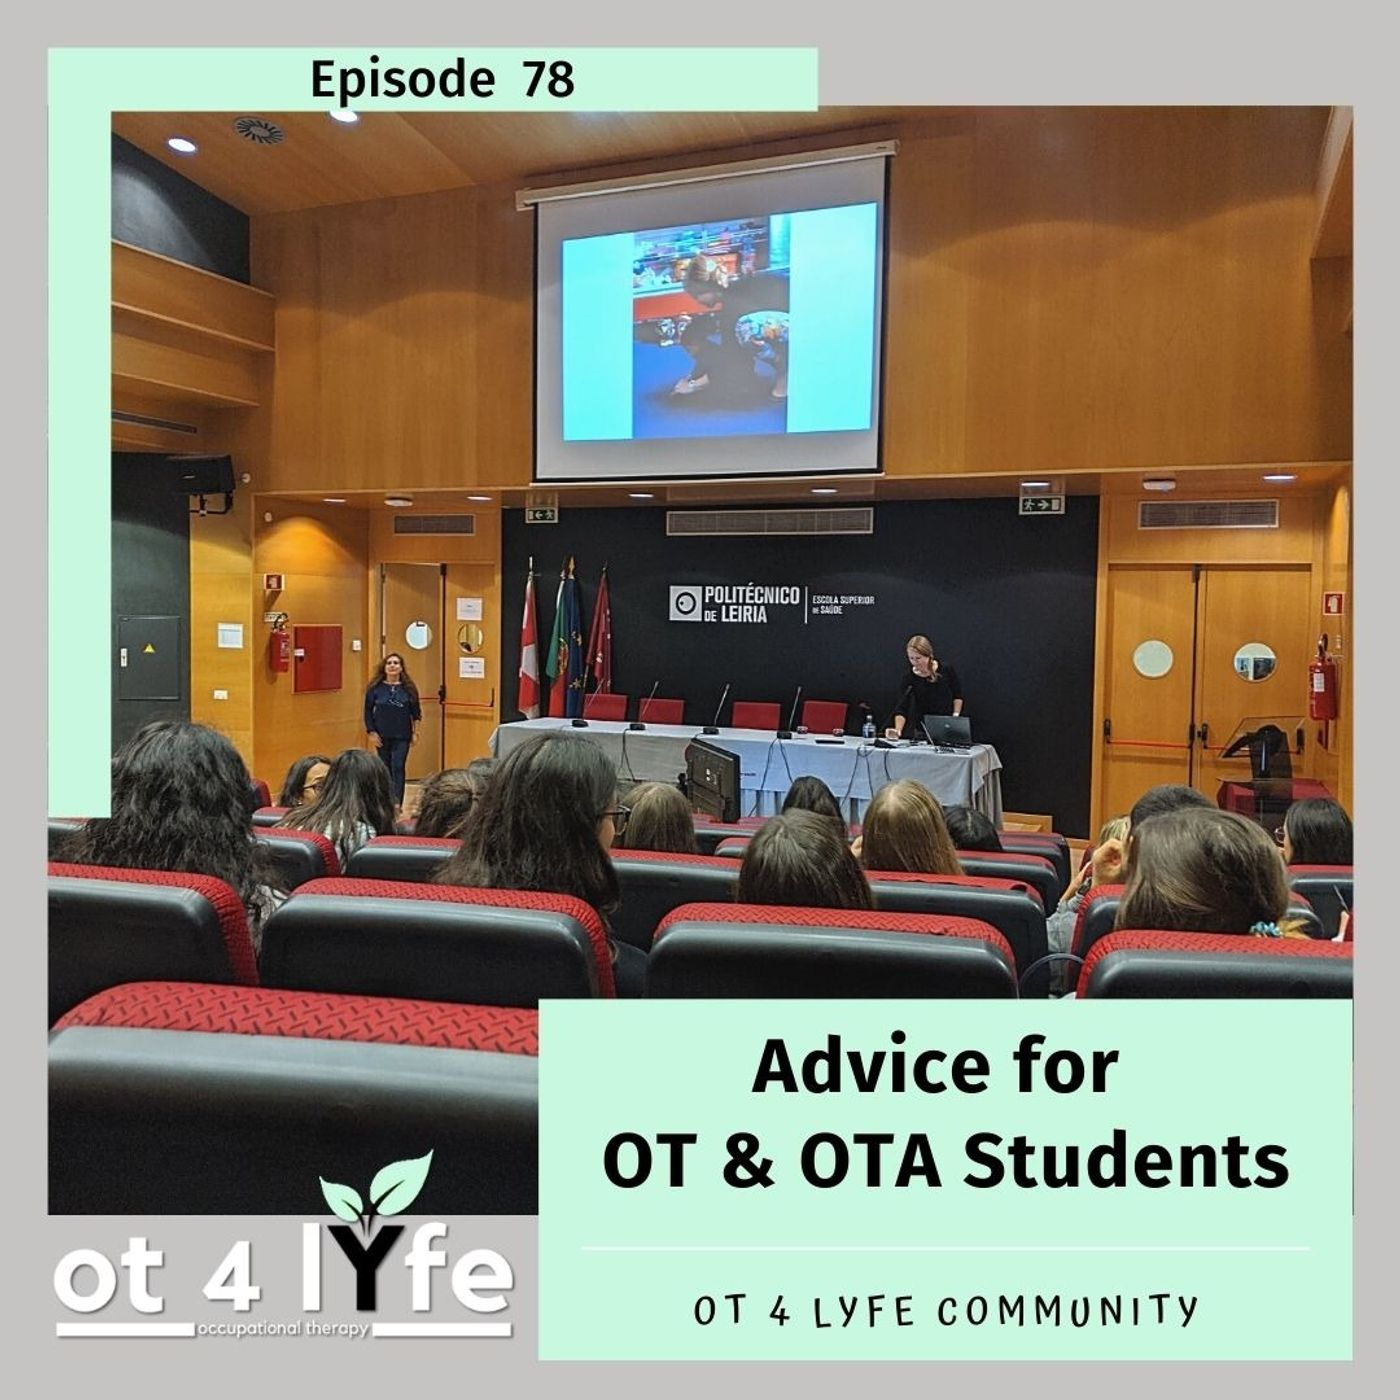 Advice for OT & OTA Students